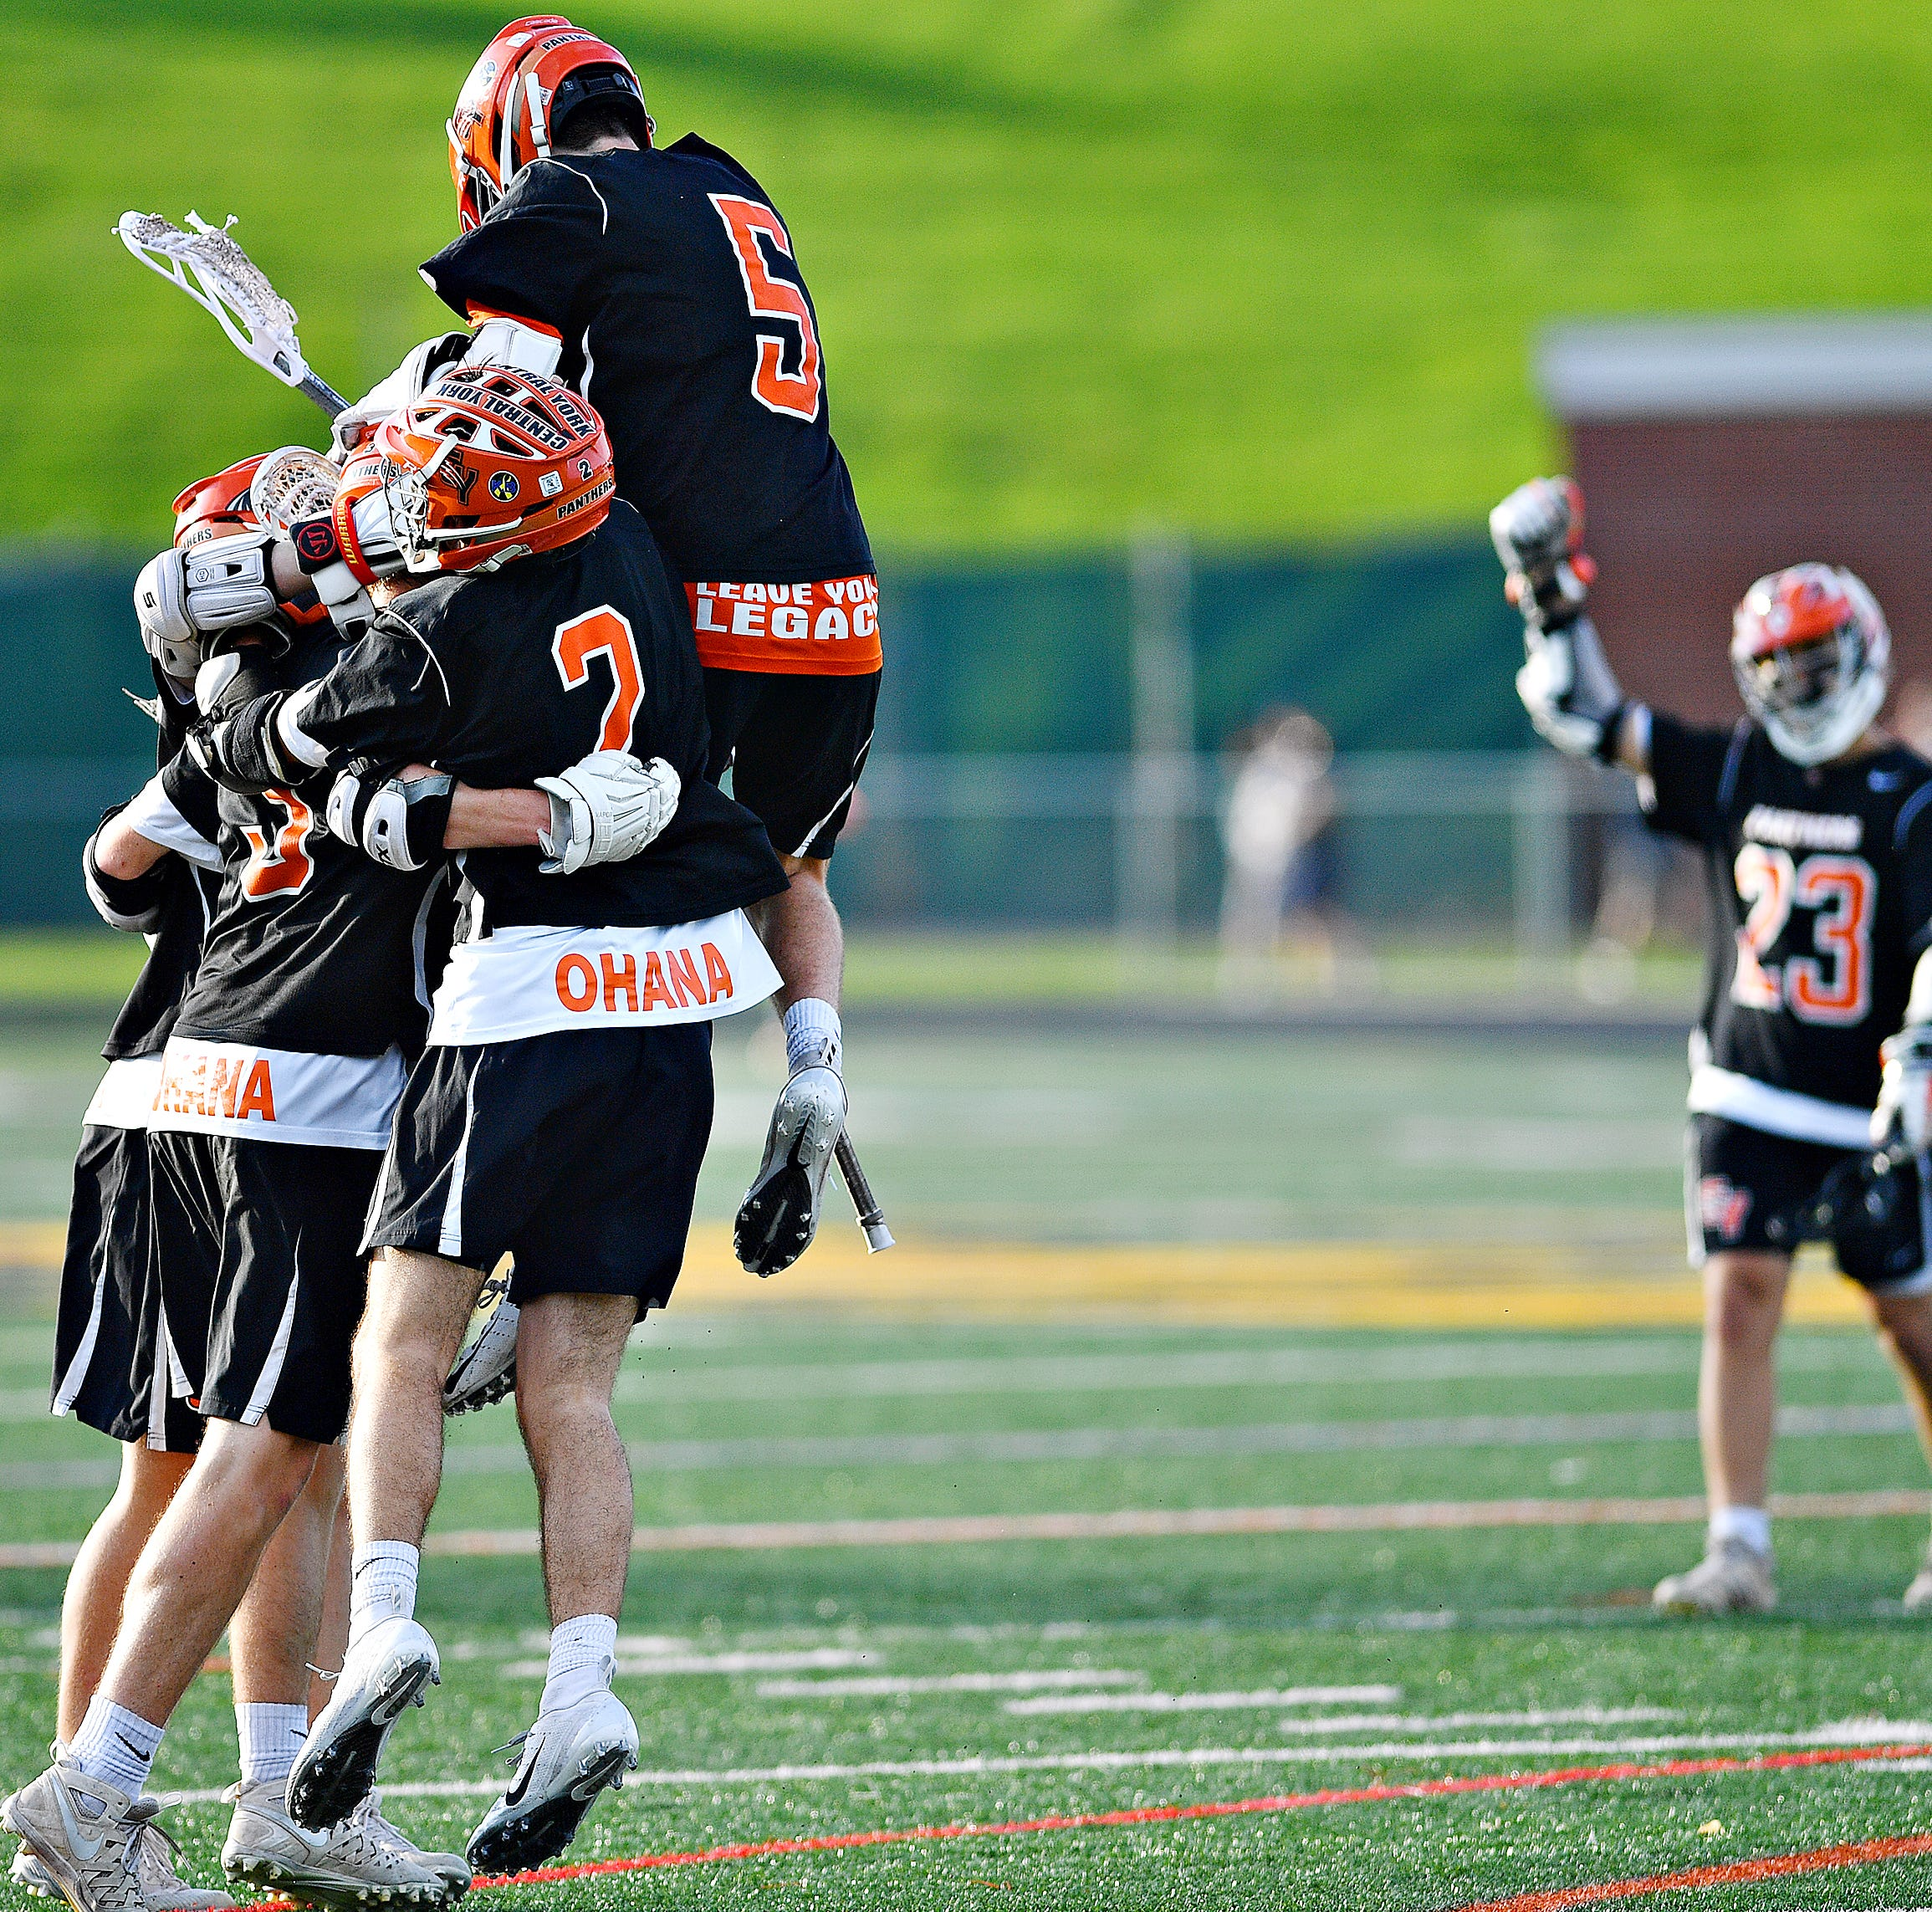 Central York ends York Catholic's unbeaten boys' lacrosse season in York-Adams title game